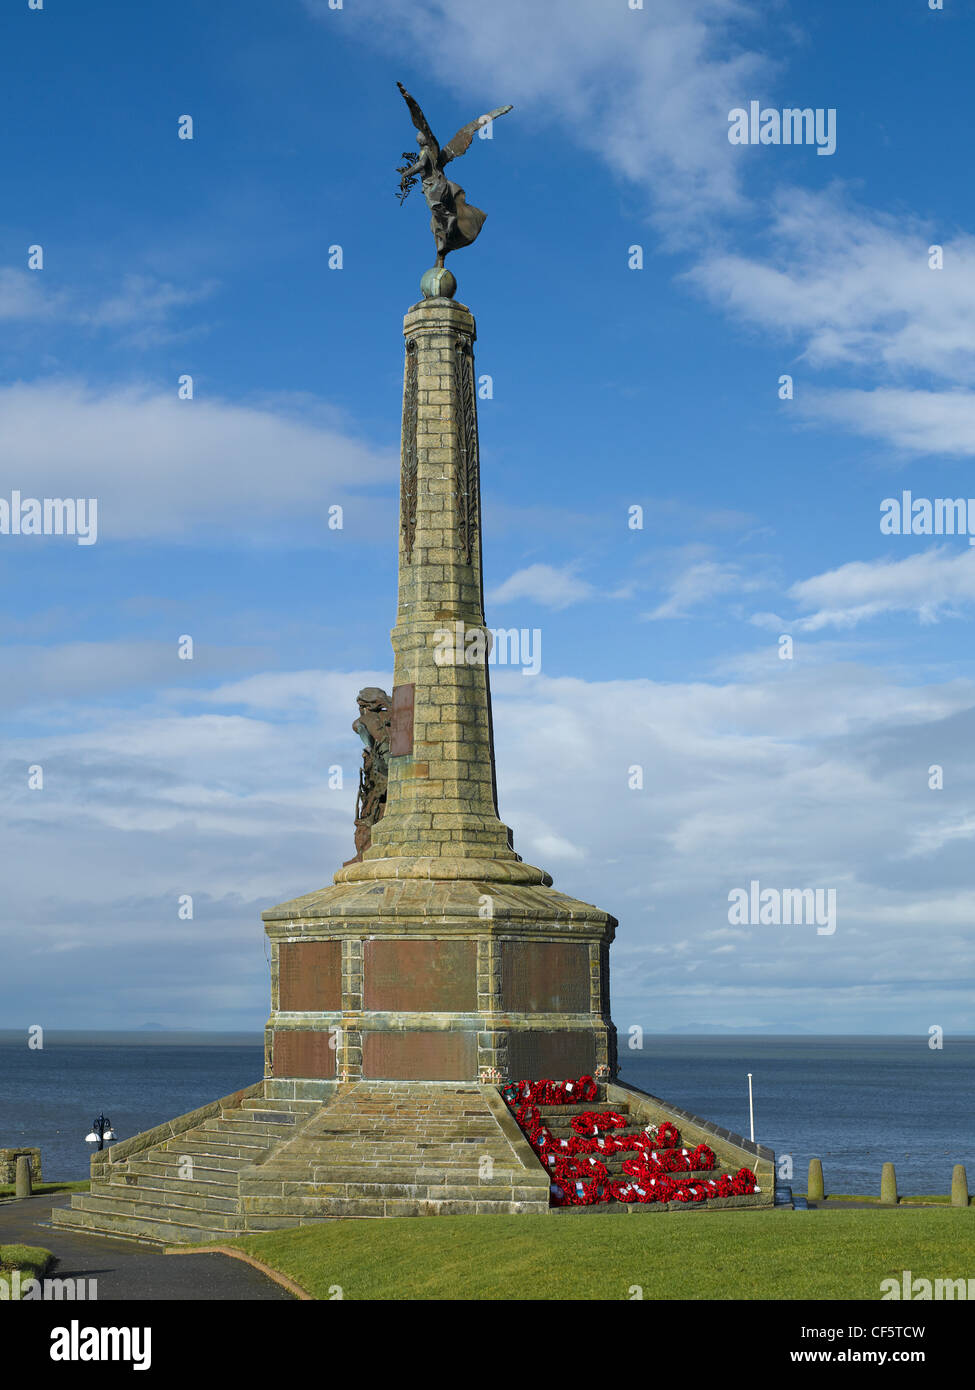 War memorial in the grounds of Aberystwyth Castle ruins. - Stock Image